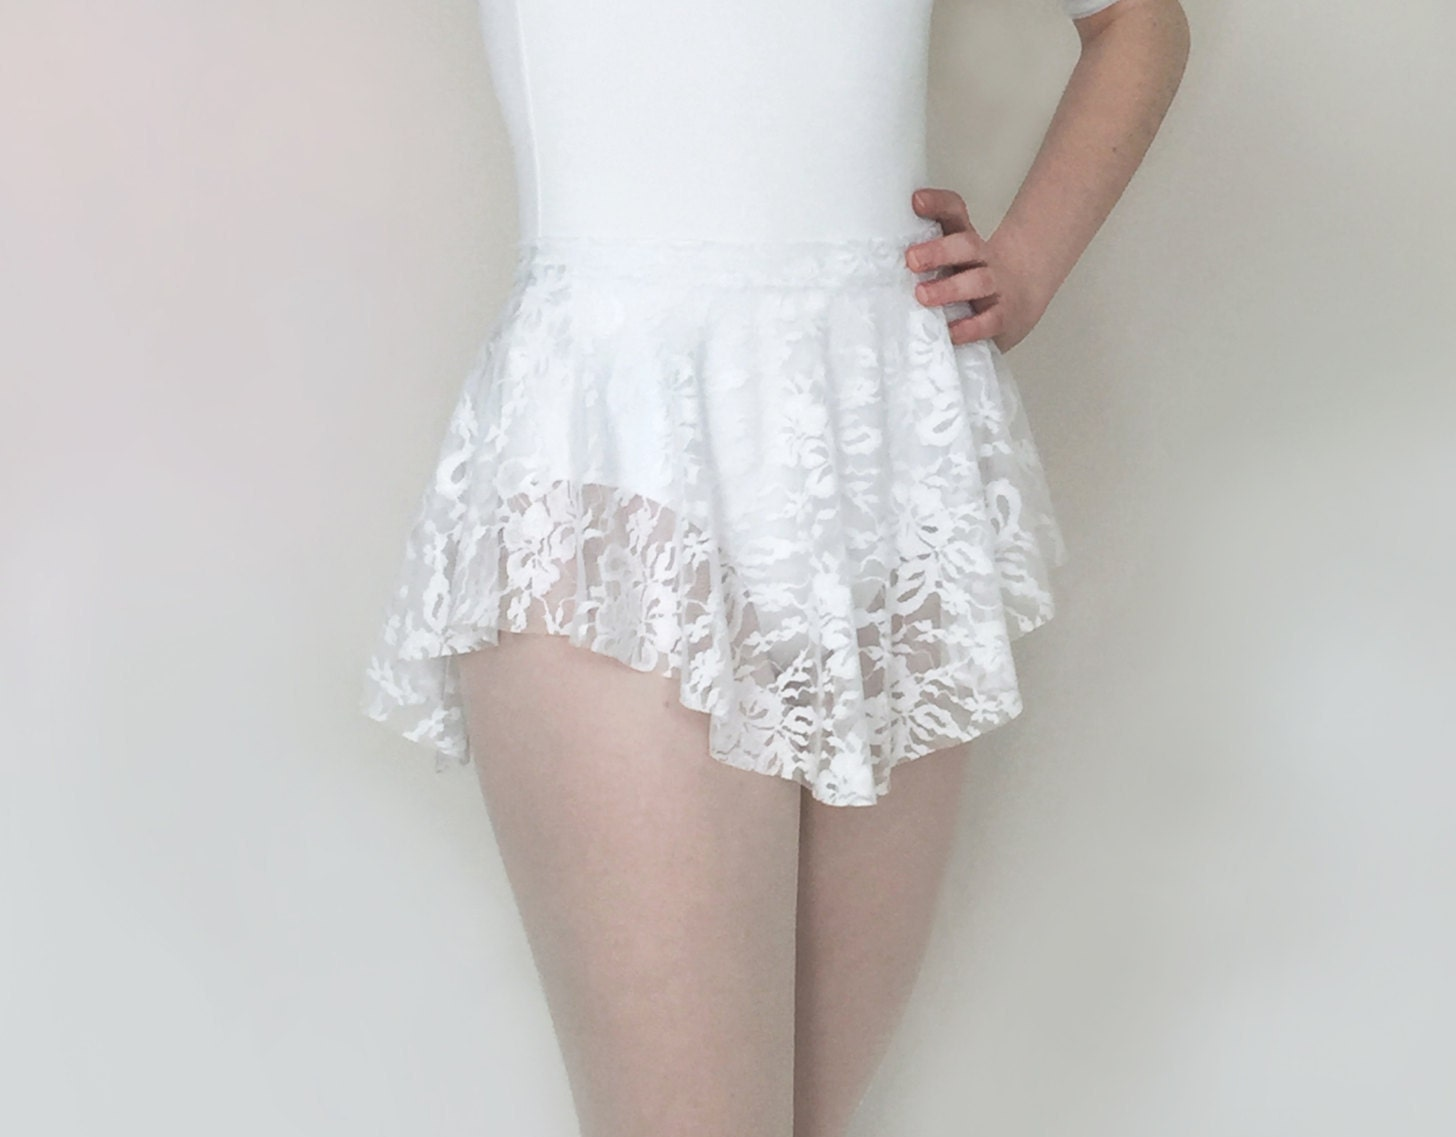 Lace Ballet Skirt- SAB Skirt - Stretch Lace Classic White - Dance skirt-  Royall Dancewear- summer intensive